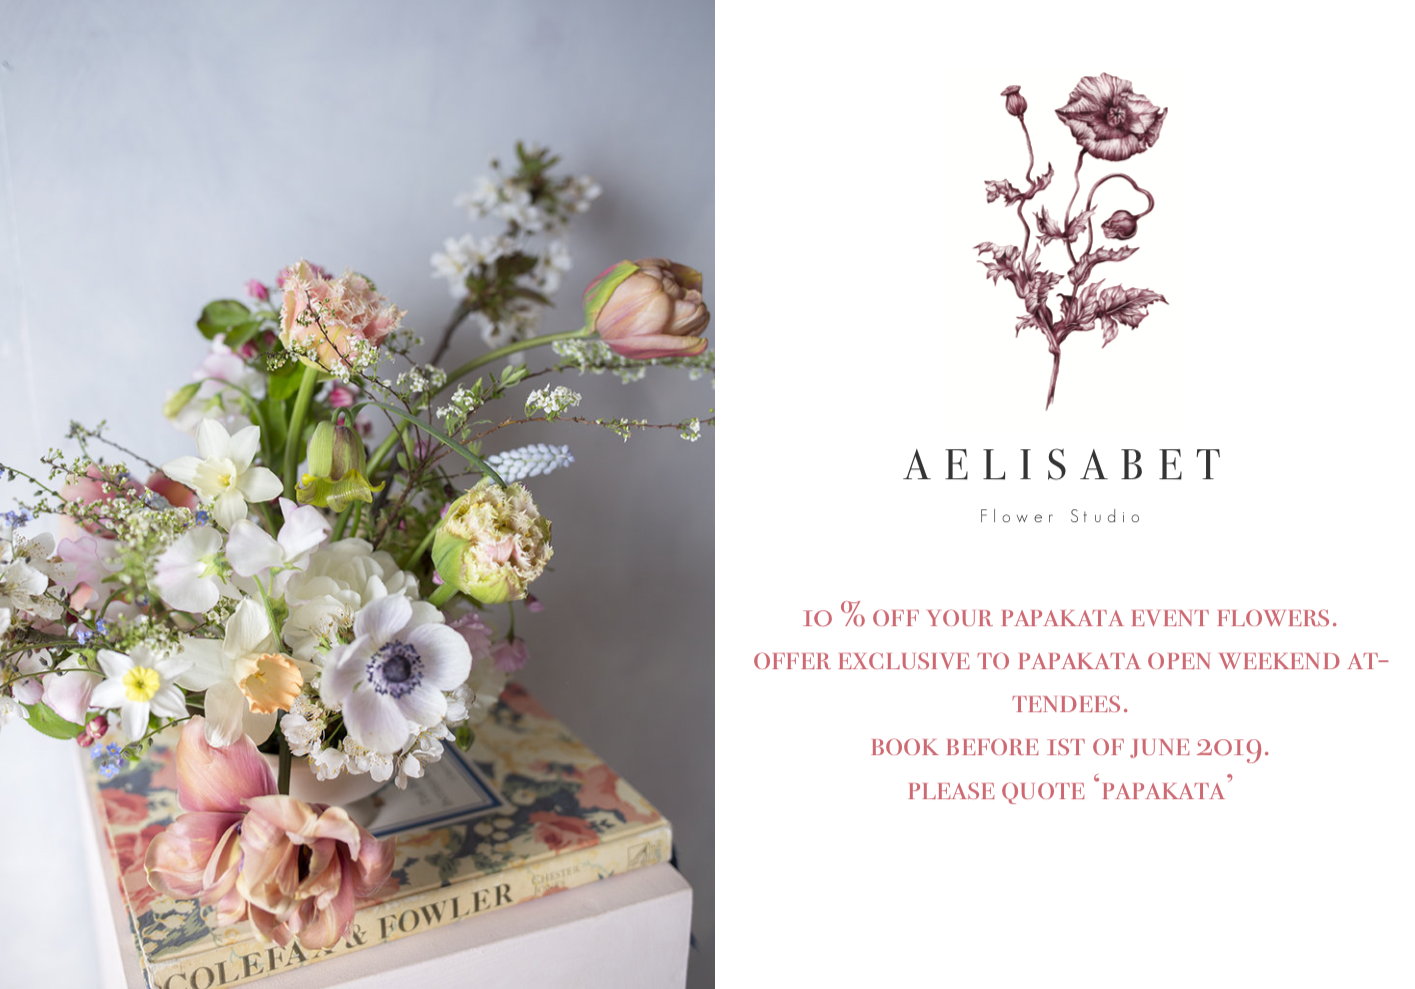 Aelisabet Flowers: Your exclusive PapaKata Spring Open Weekend 2019 discount